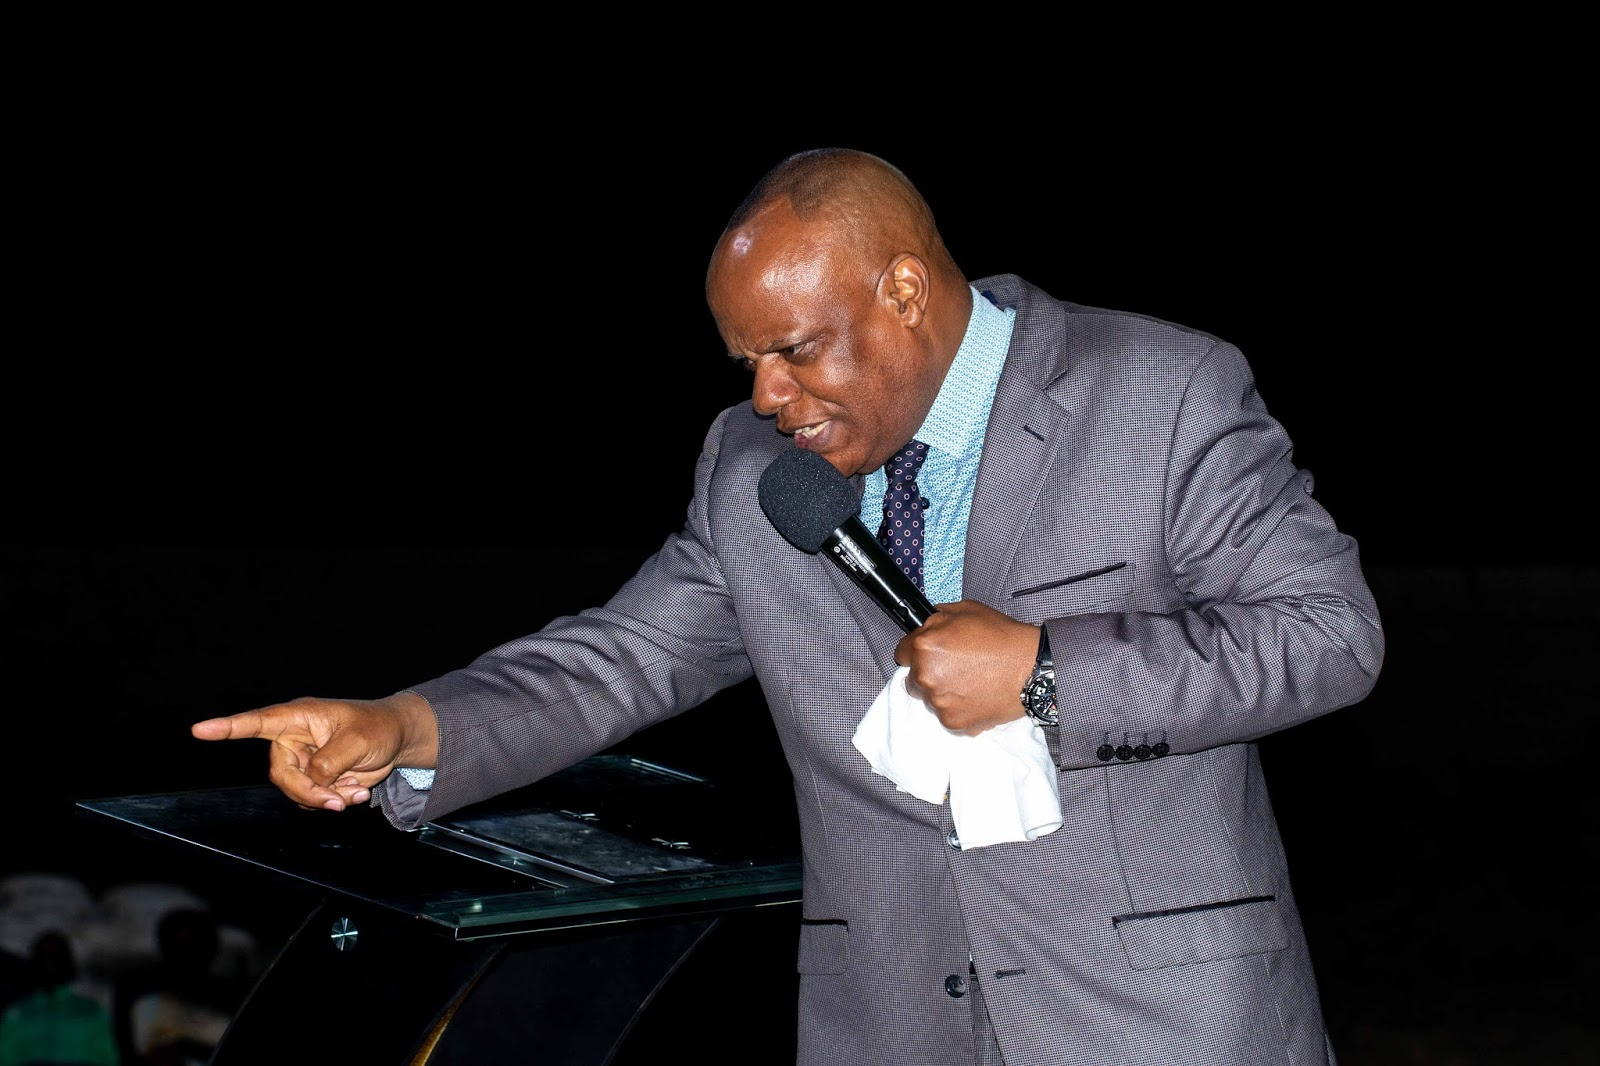 Apostle Alexander Chisango - We Are Cleansed By The Word!